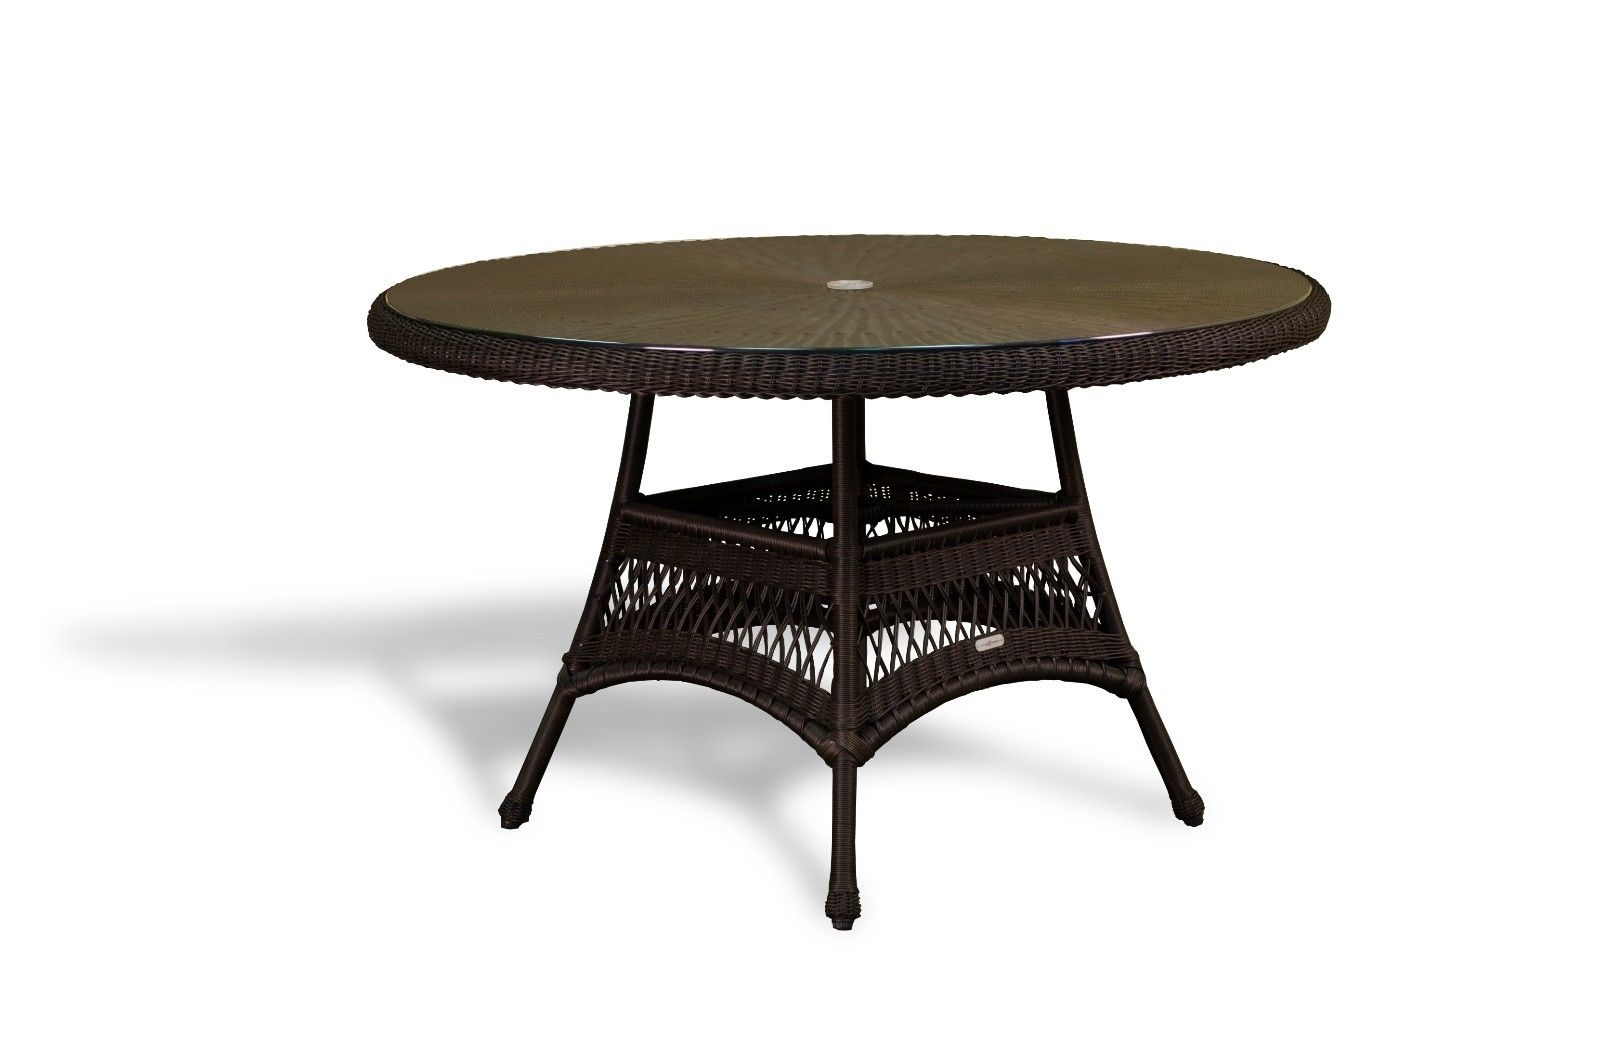 "#117 - 48"" Round Tortoise Resin Wicker Outdoor Dining Table - Patio Garden Furniture"